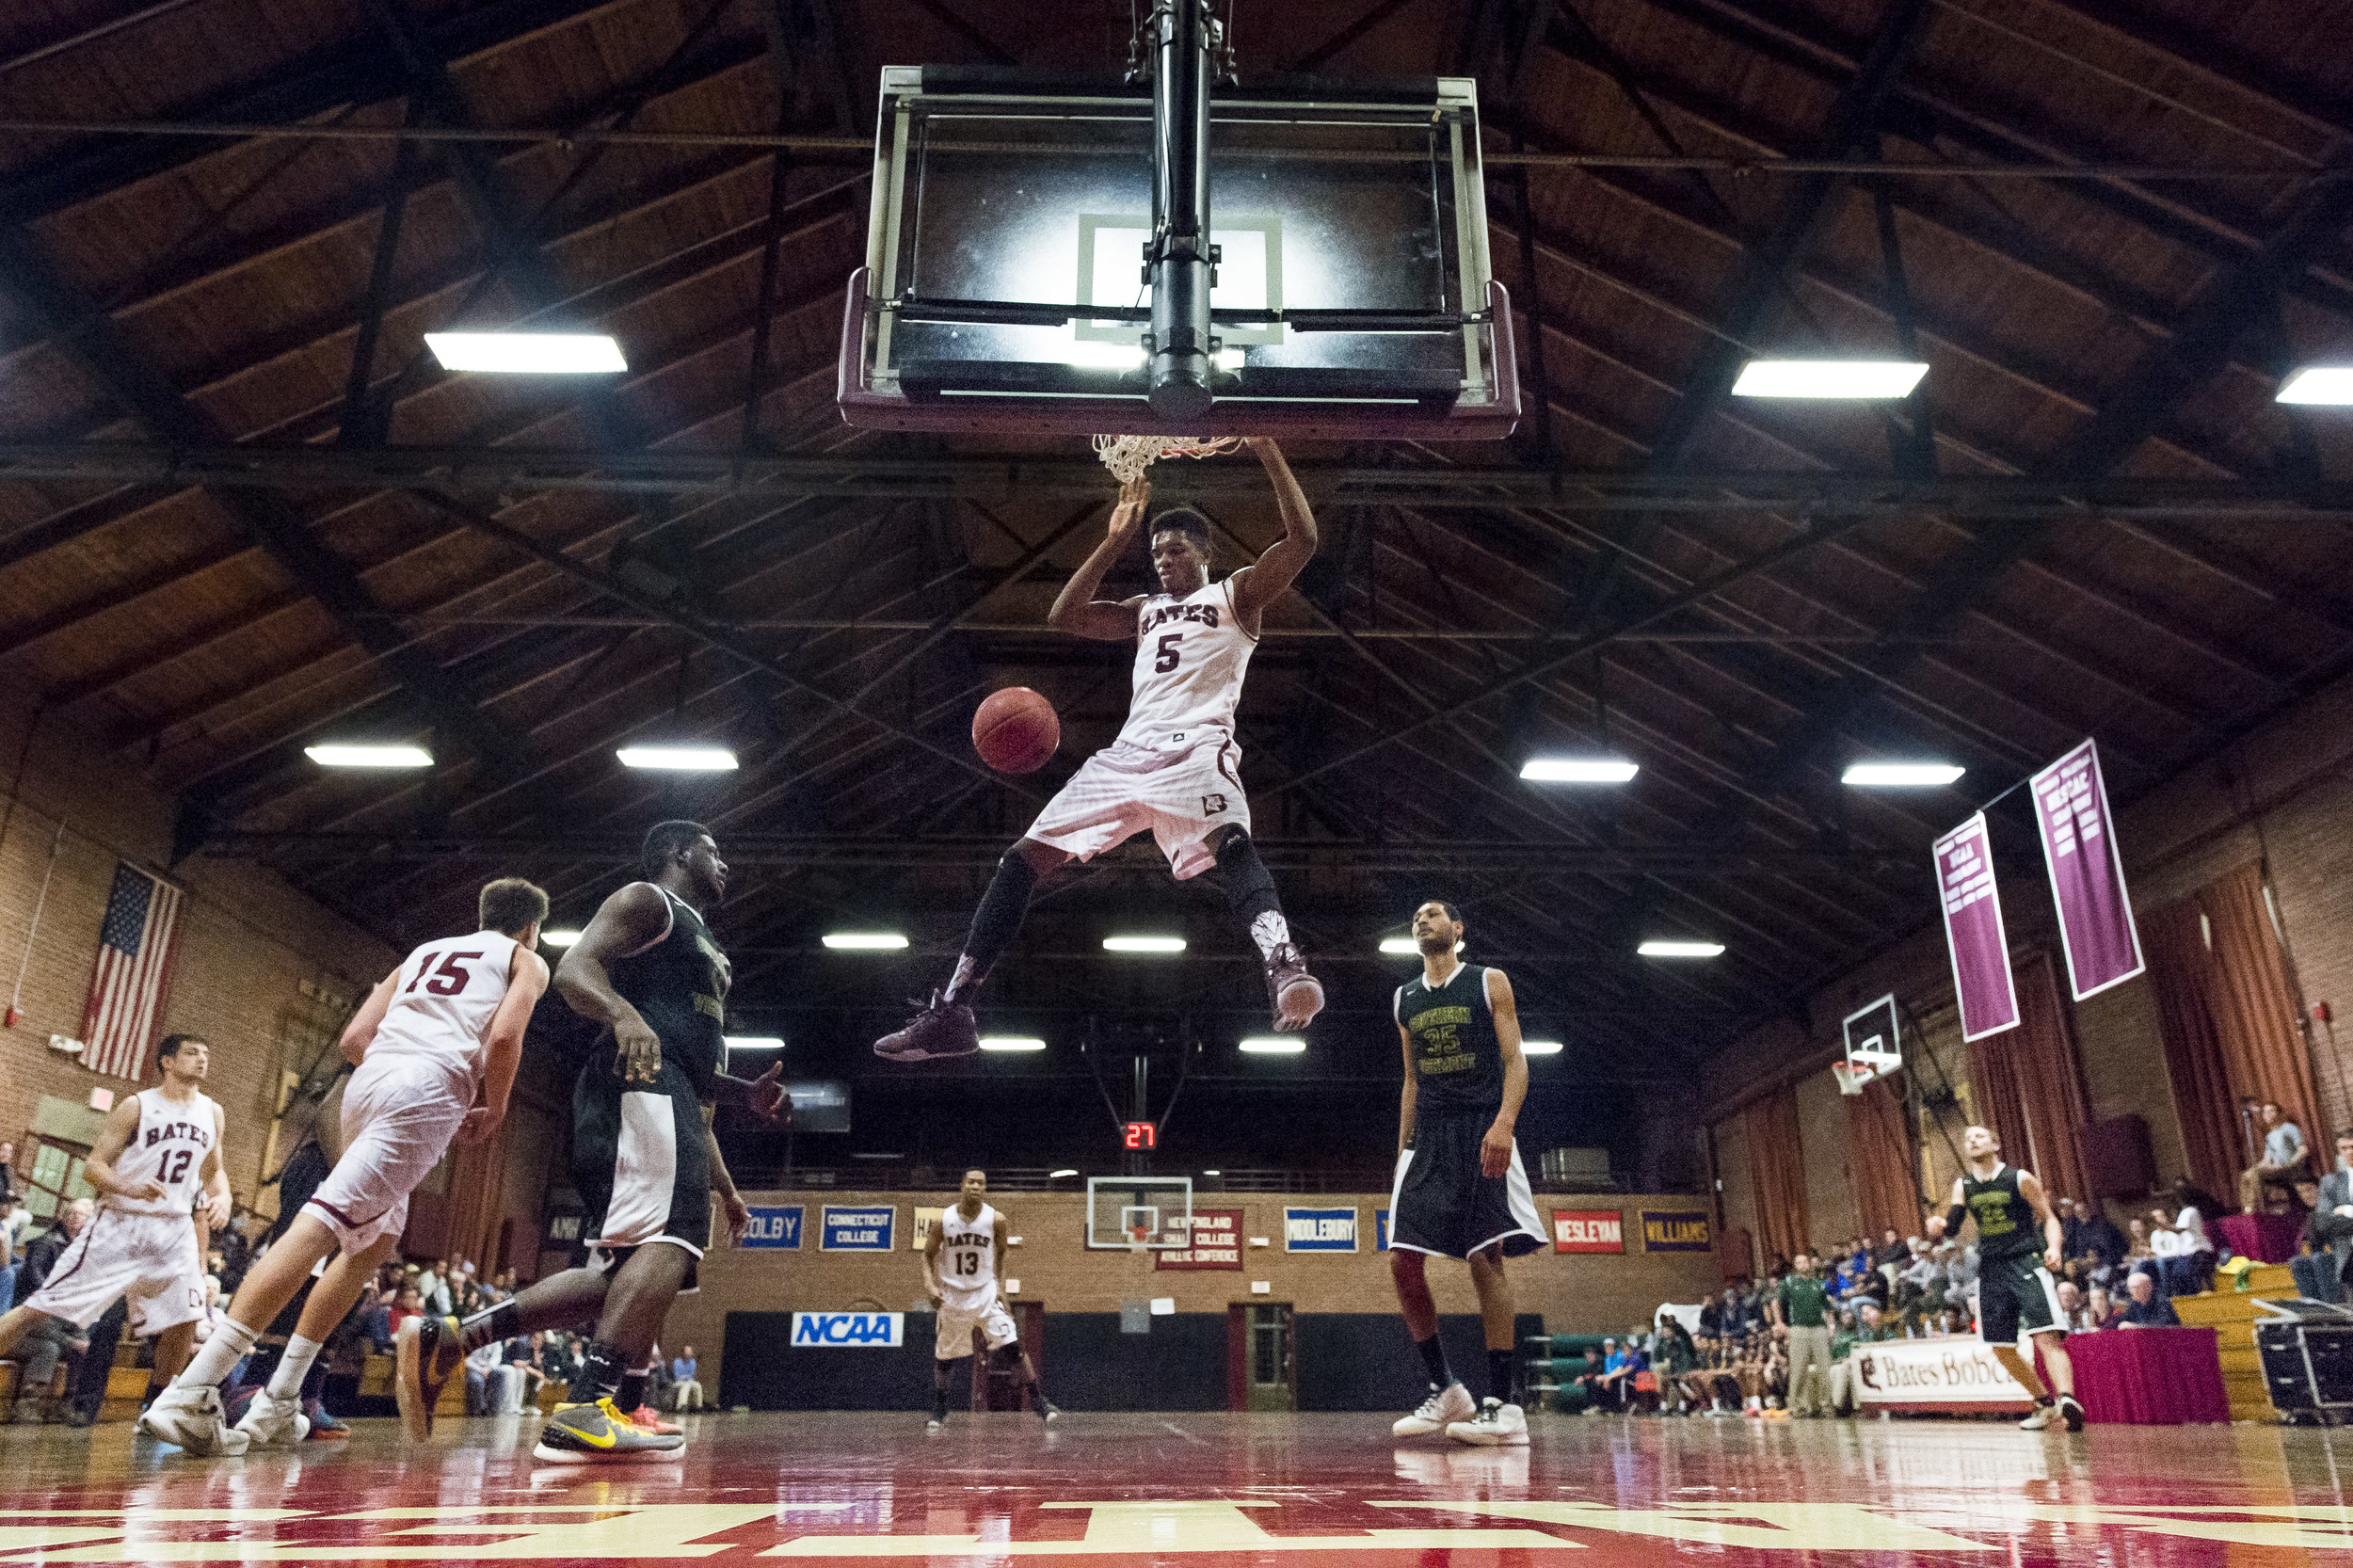 Marcus Delpeche soars for one of his four second-half dunks in Bates' 67-63 loss to Southern Vermont.